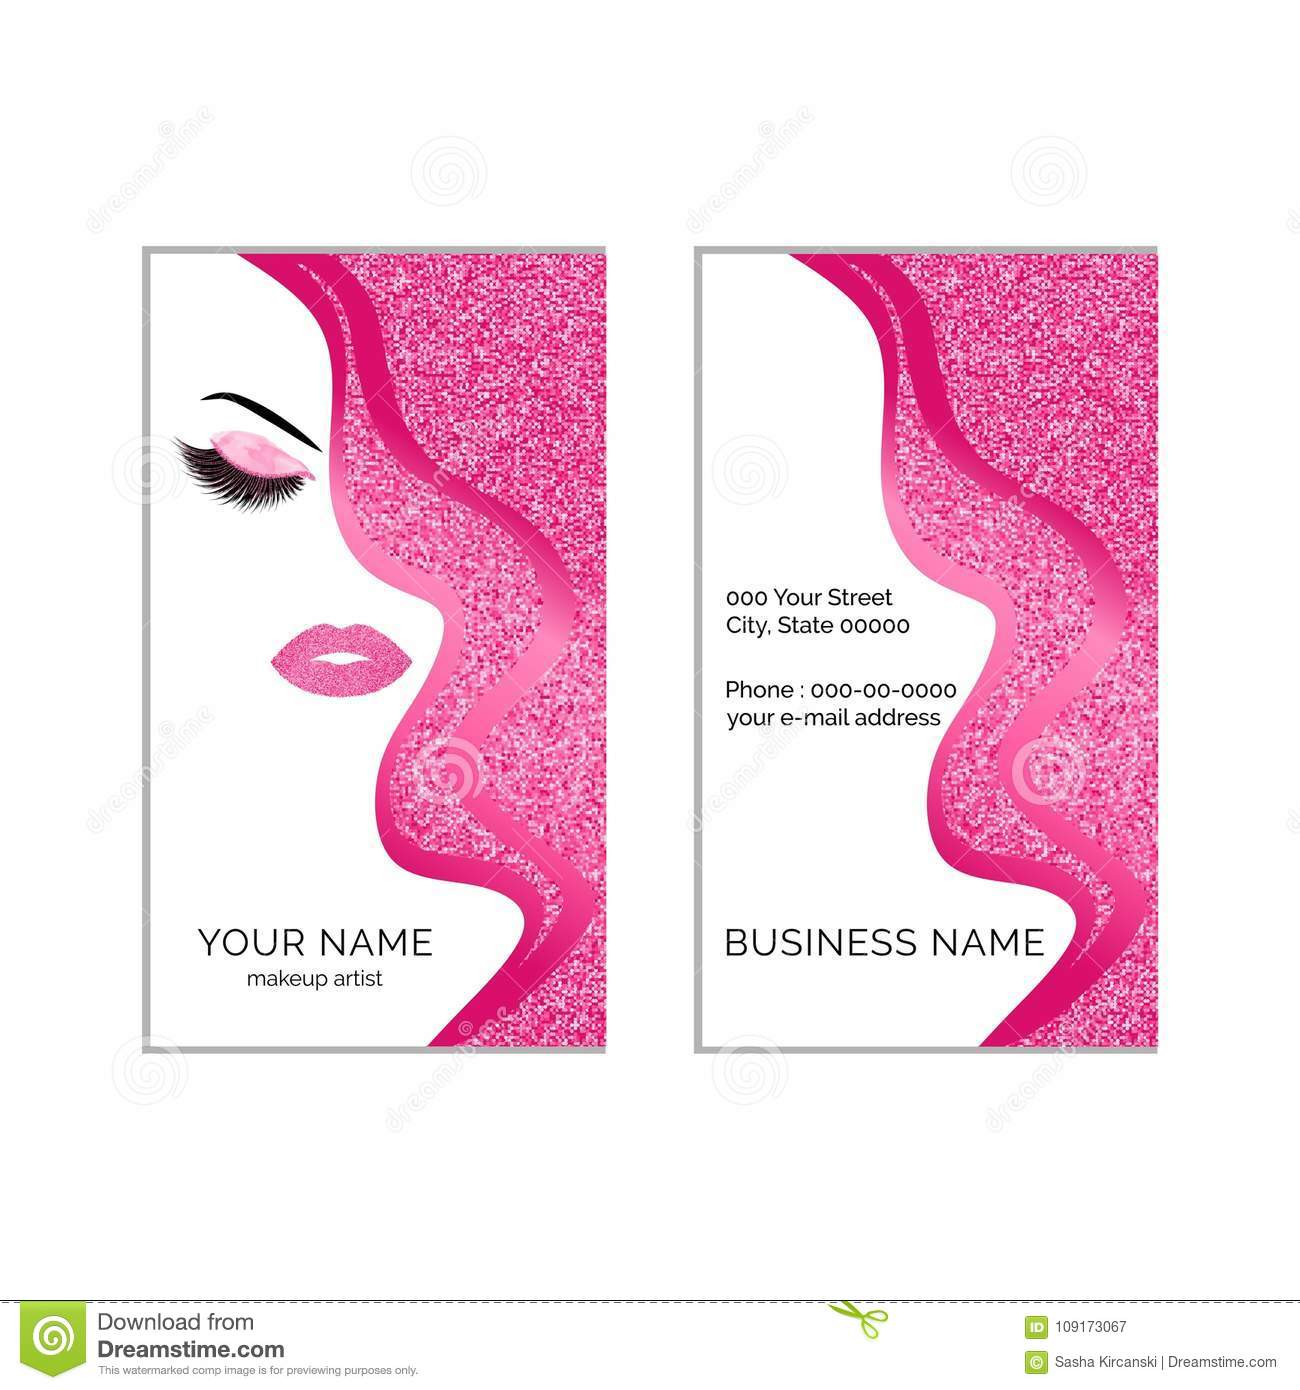 Makeup artist business card vector template stock vector makeup artist business card template flashek Image collections